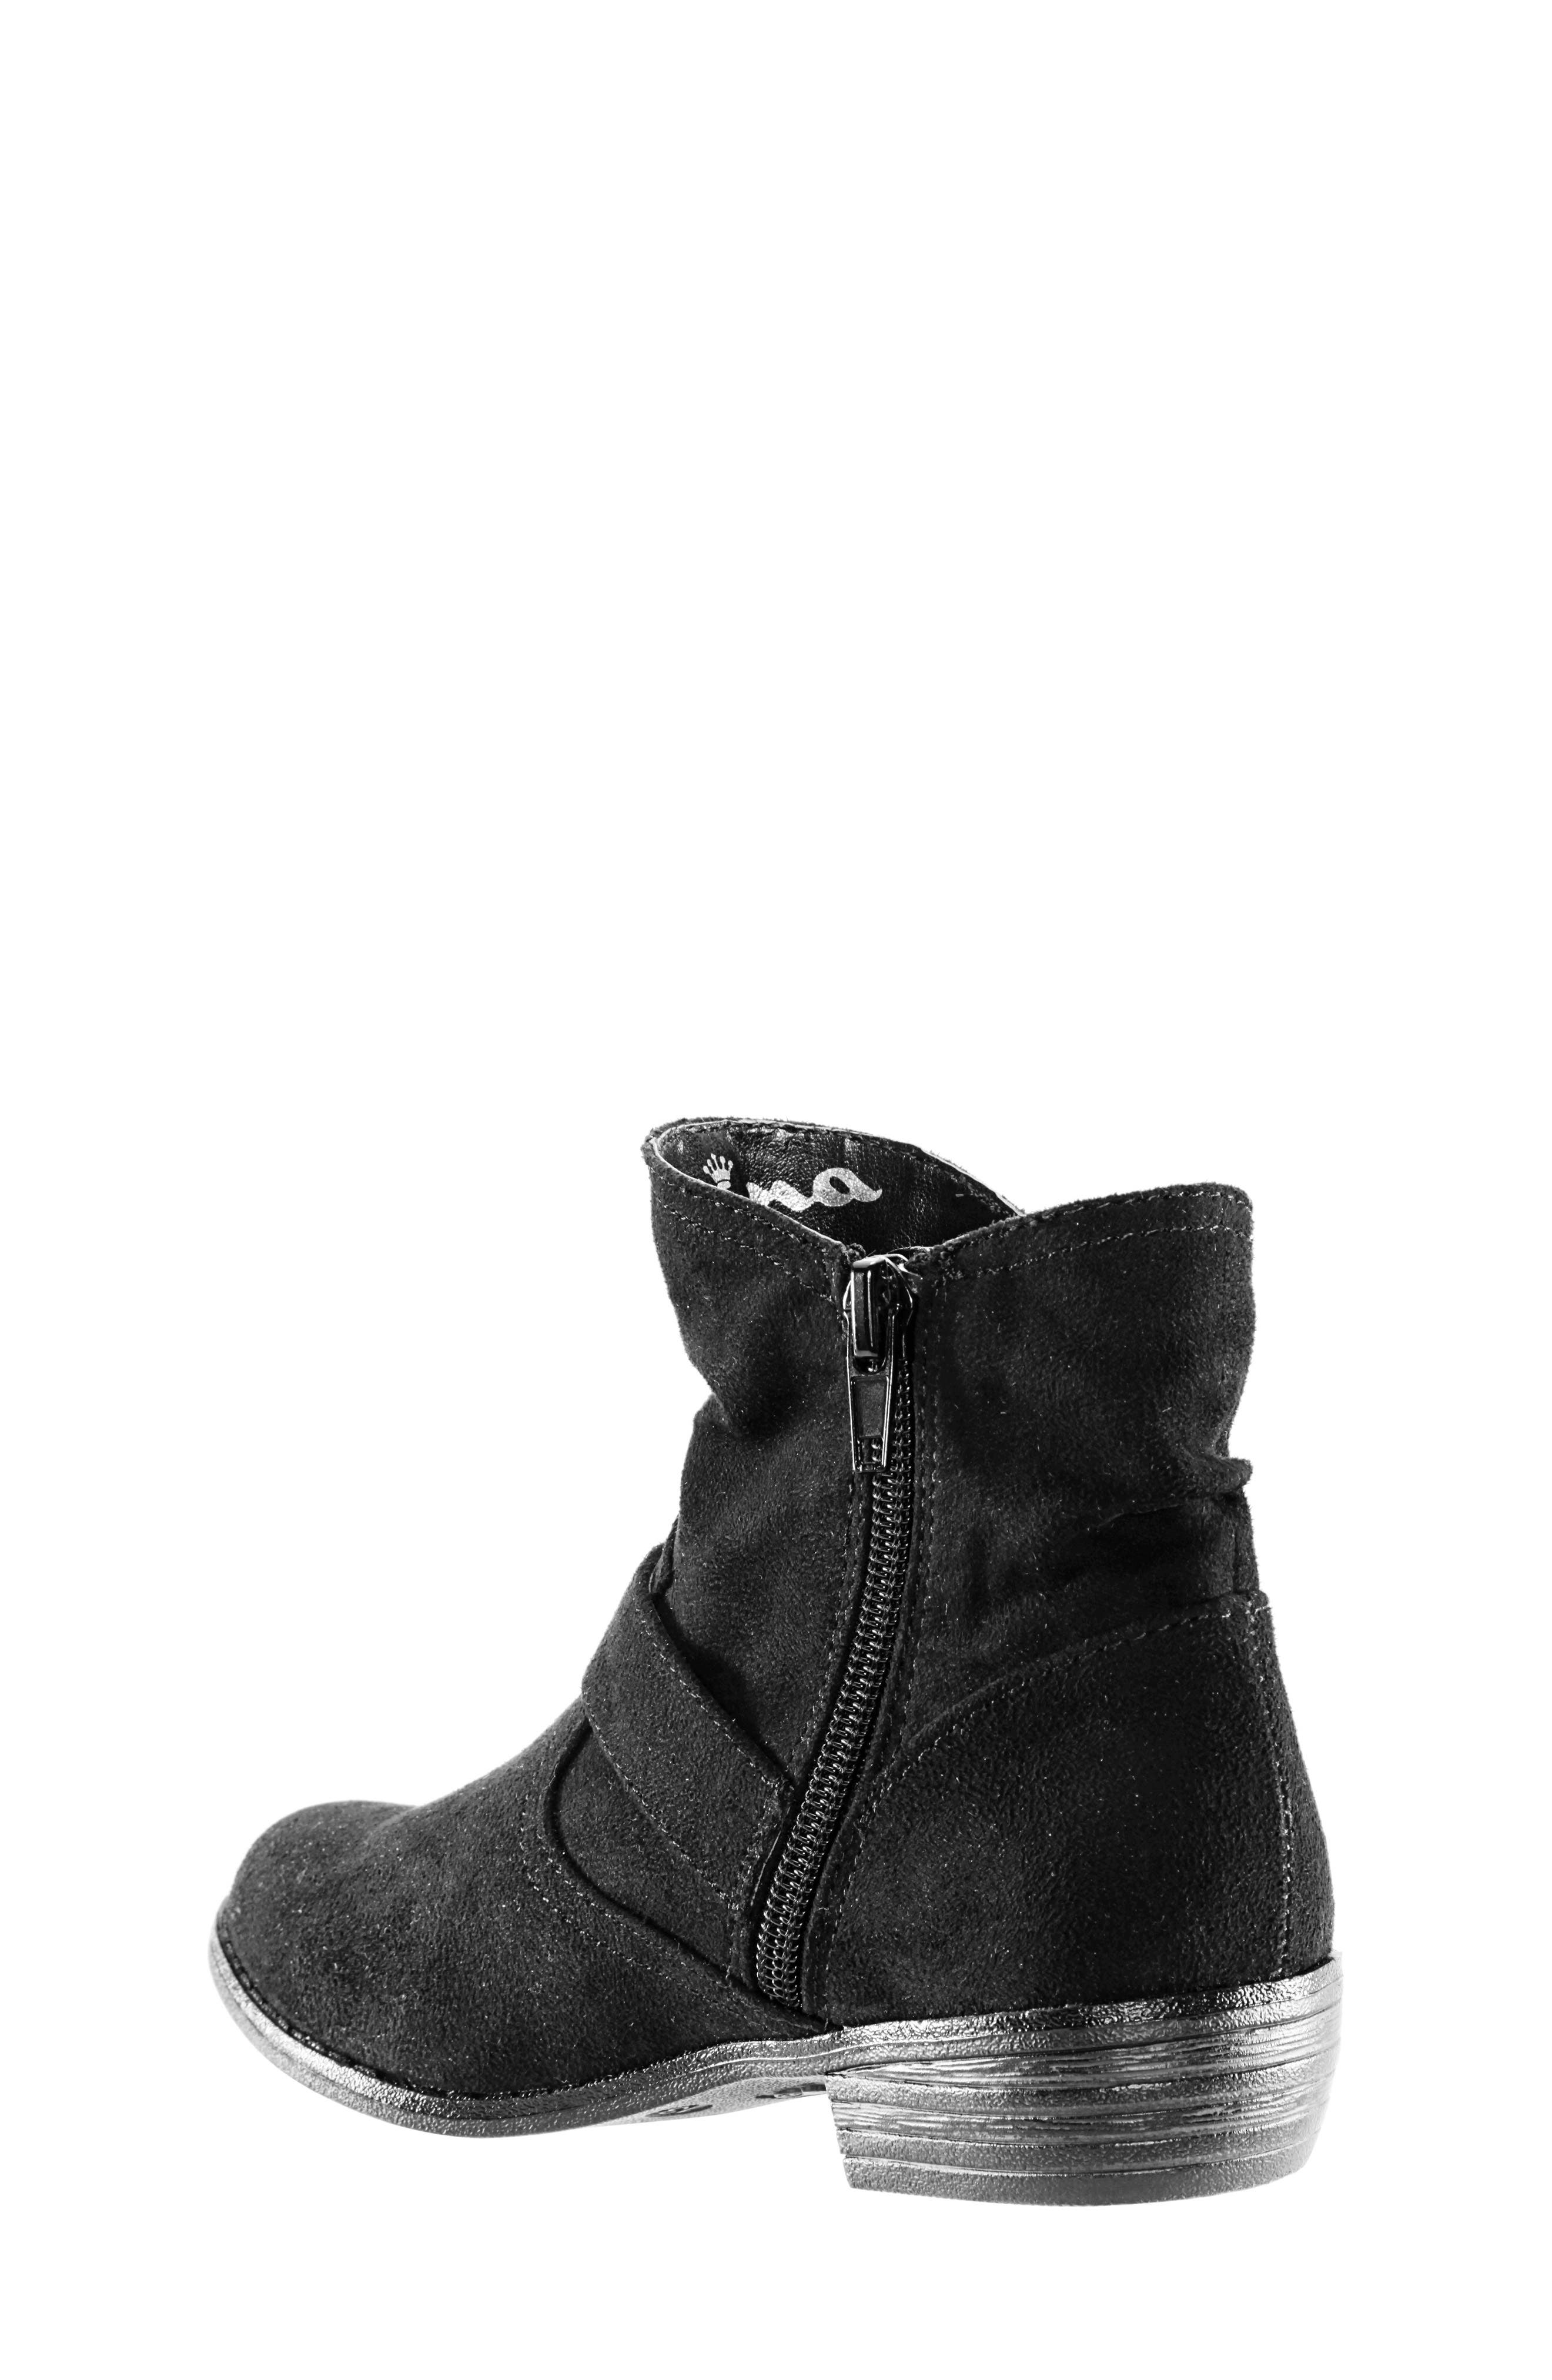 Dorrie Moto Bootie,                             Alternate thumbnail 2, color,                             BLACK BURNISHED